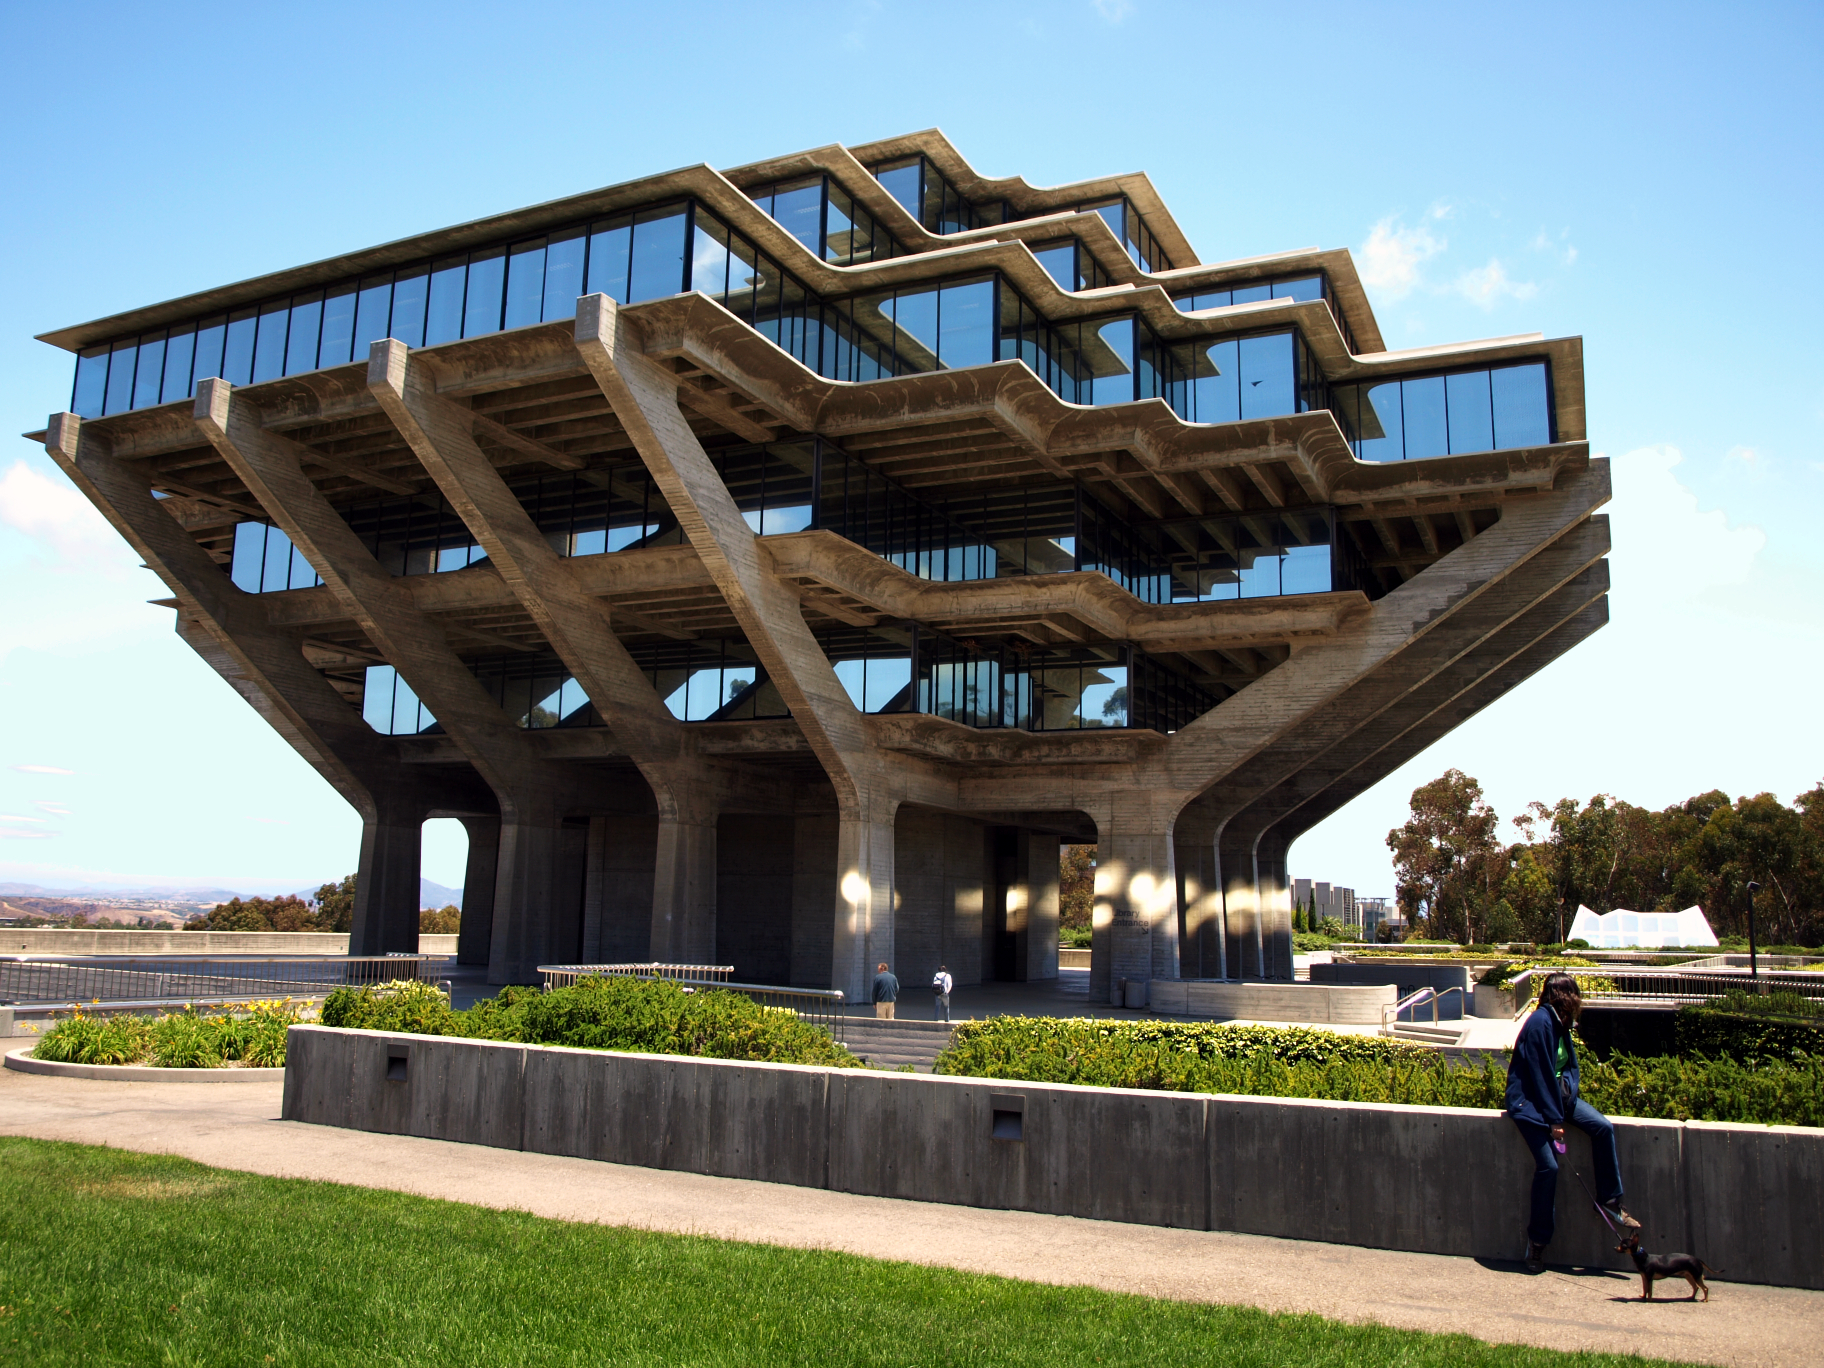 File:Geisel-Library.jpg - Wikimedia Commons